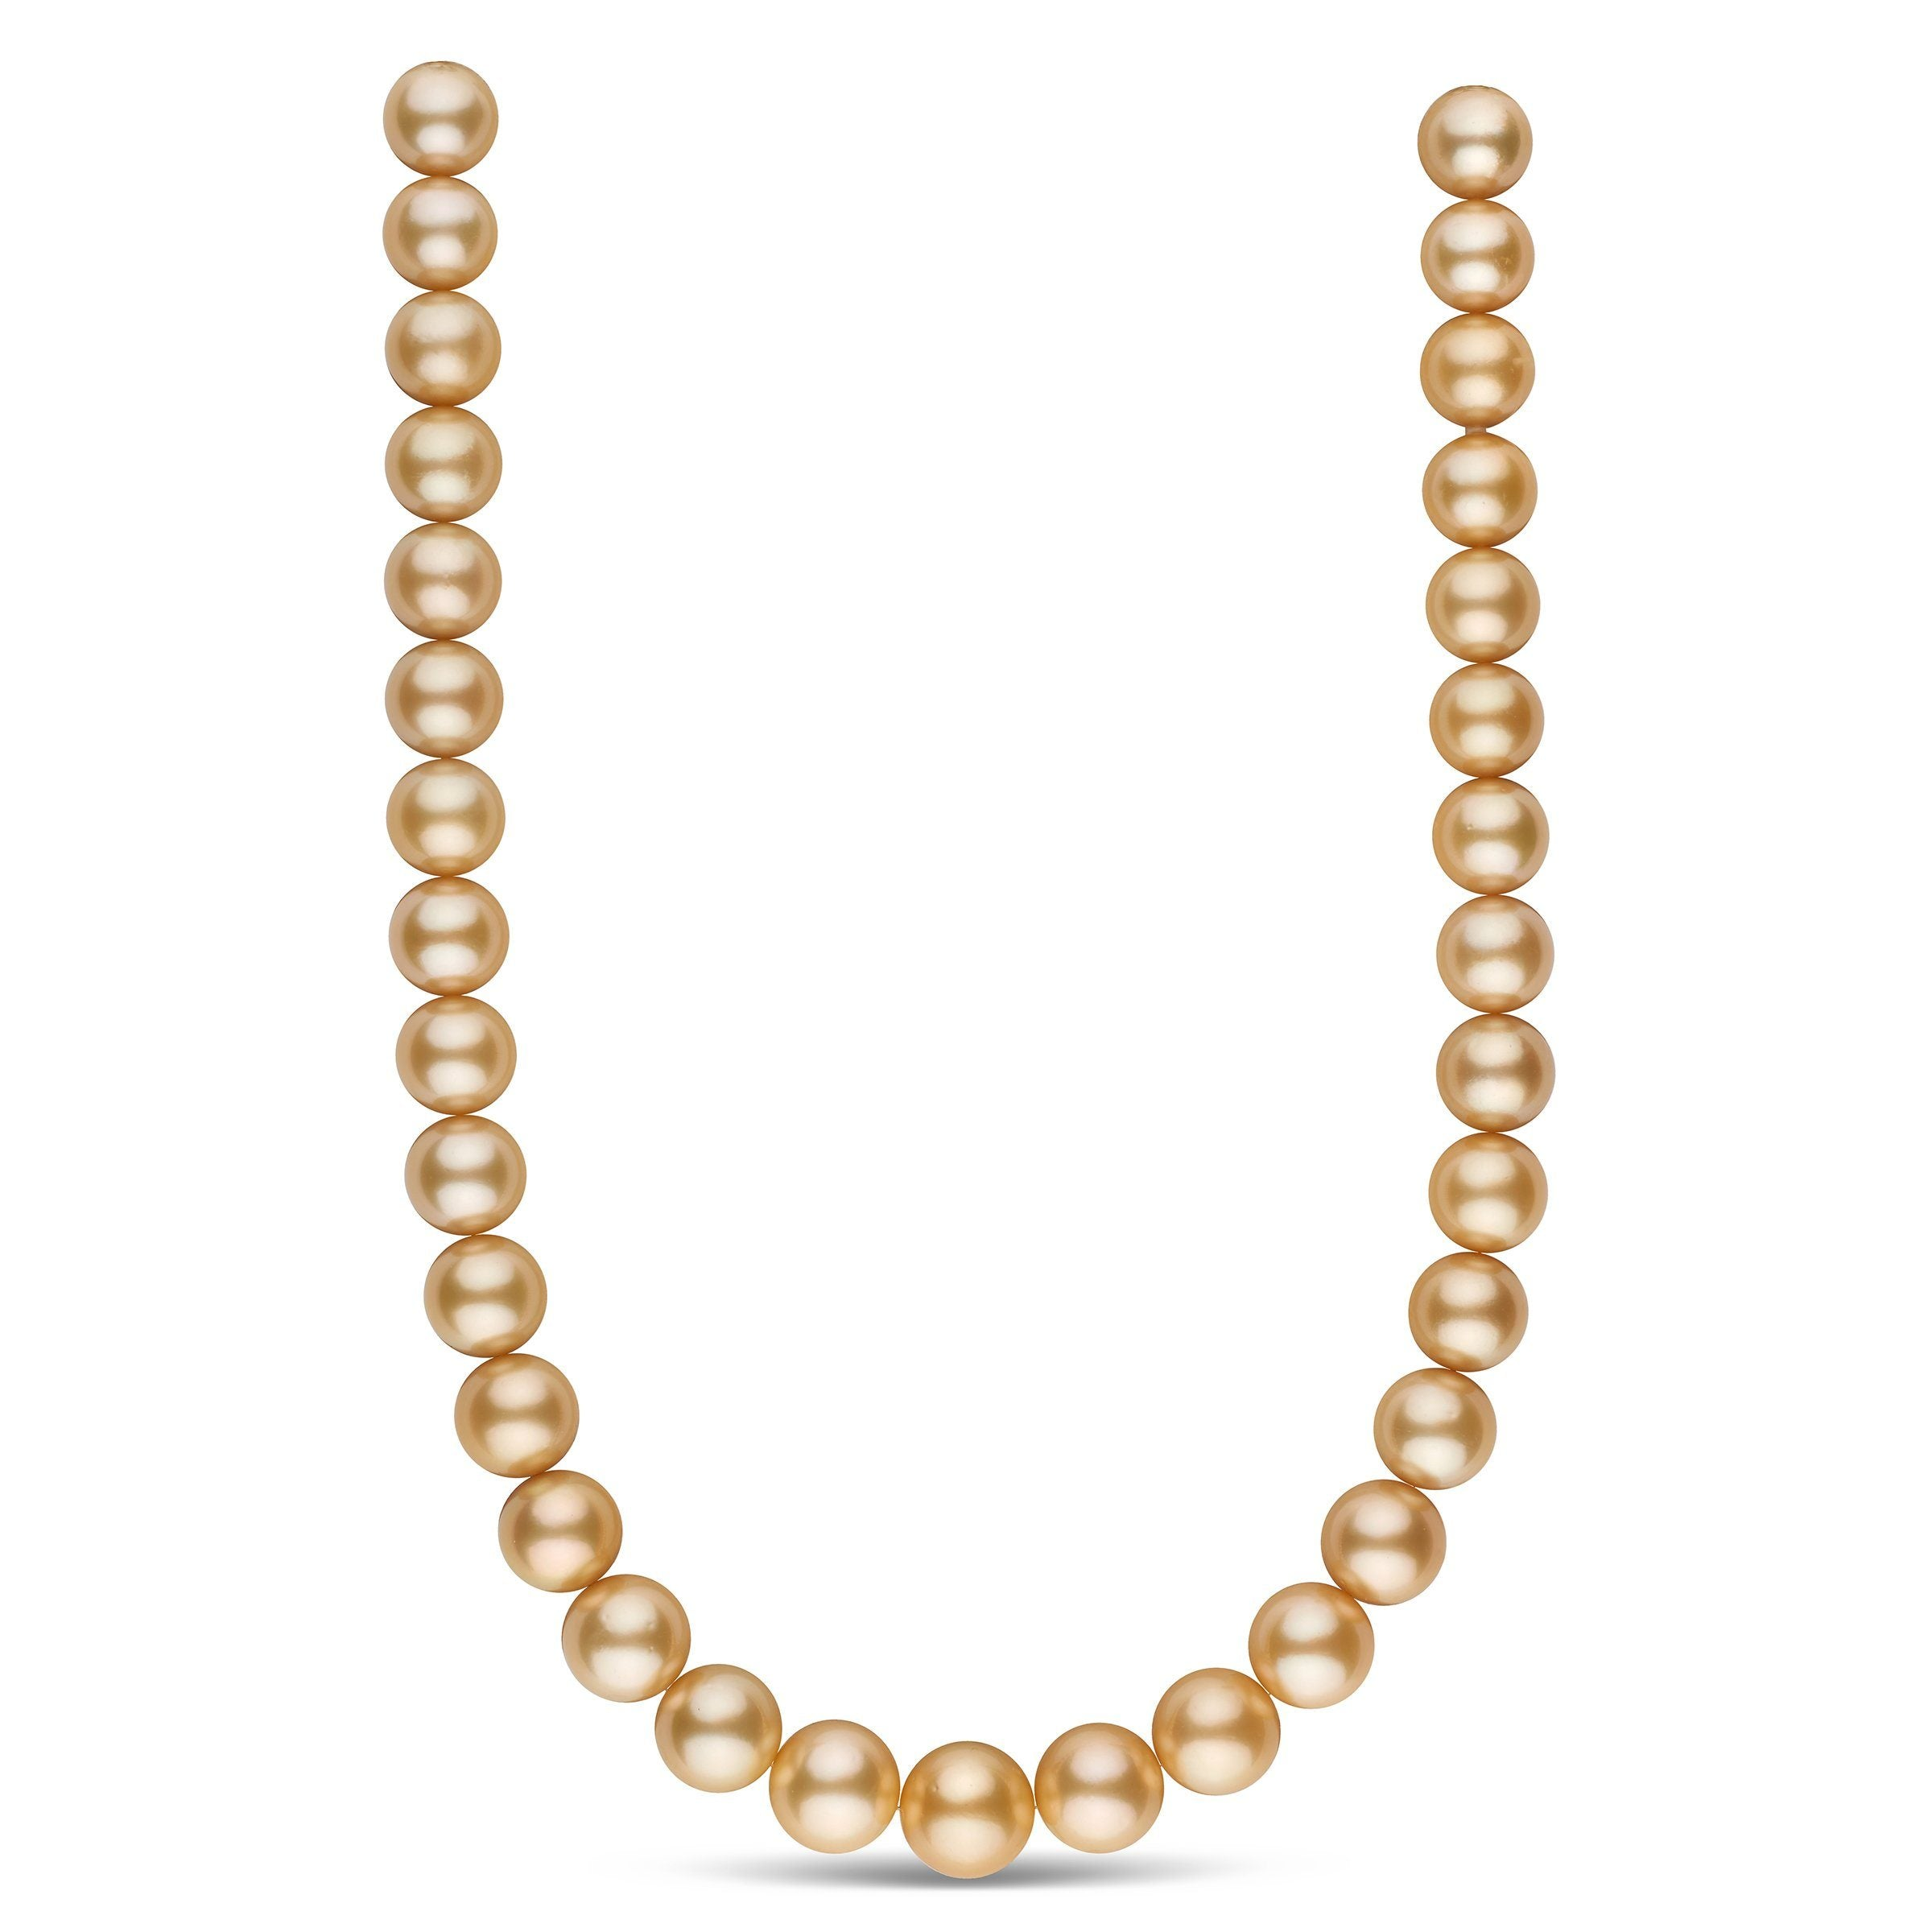 13.1-15.4 mm AAA Golden South Sea Round Pearl Necklace